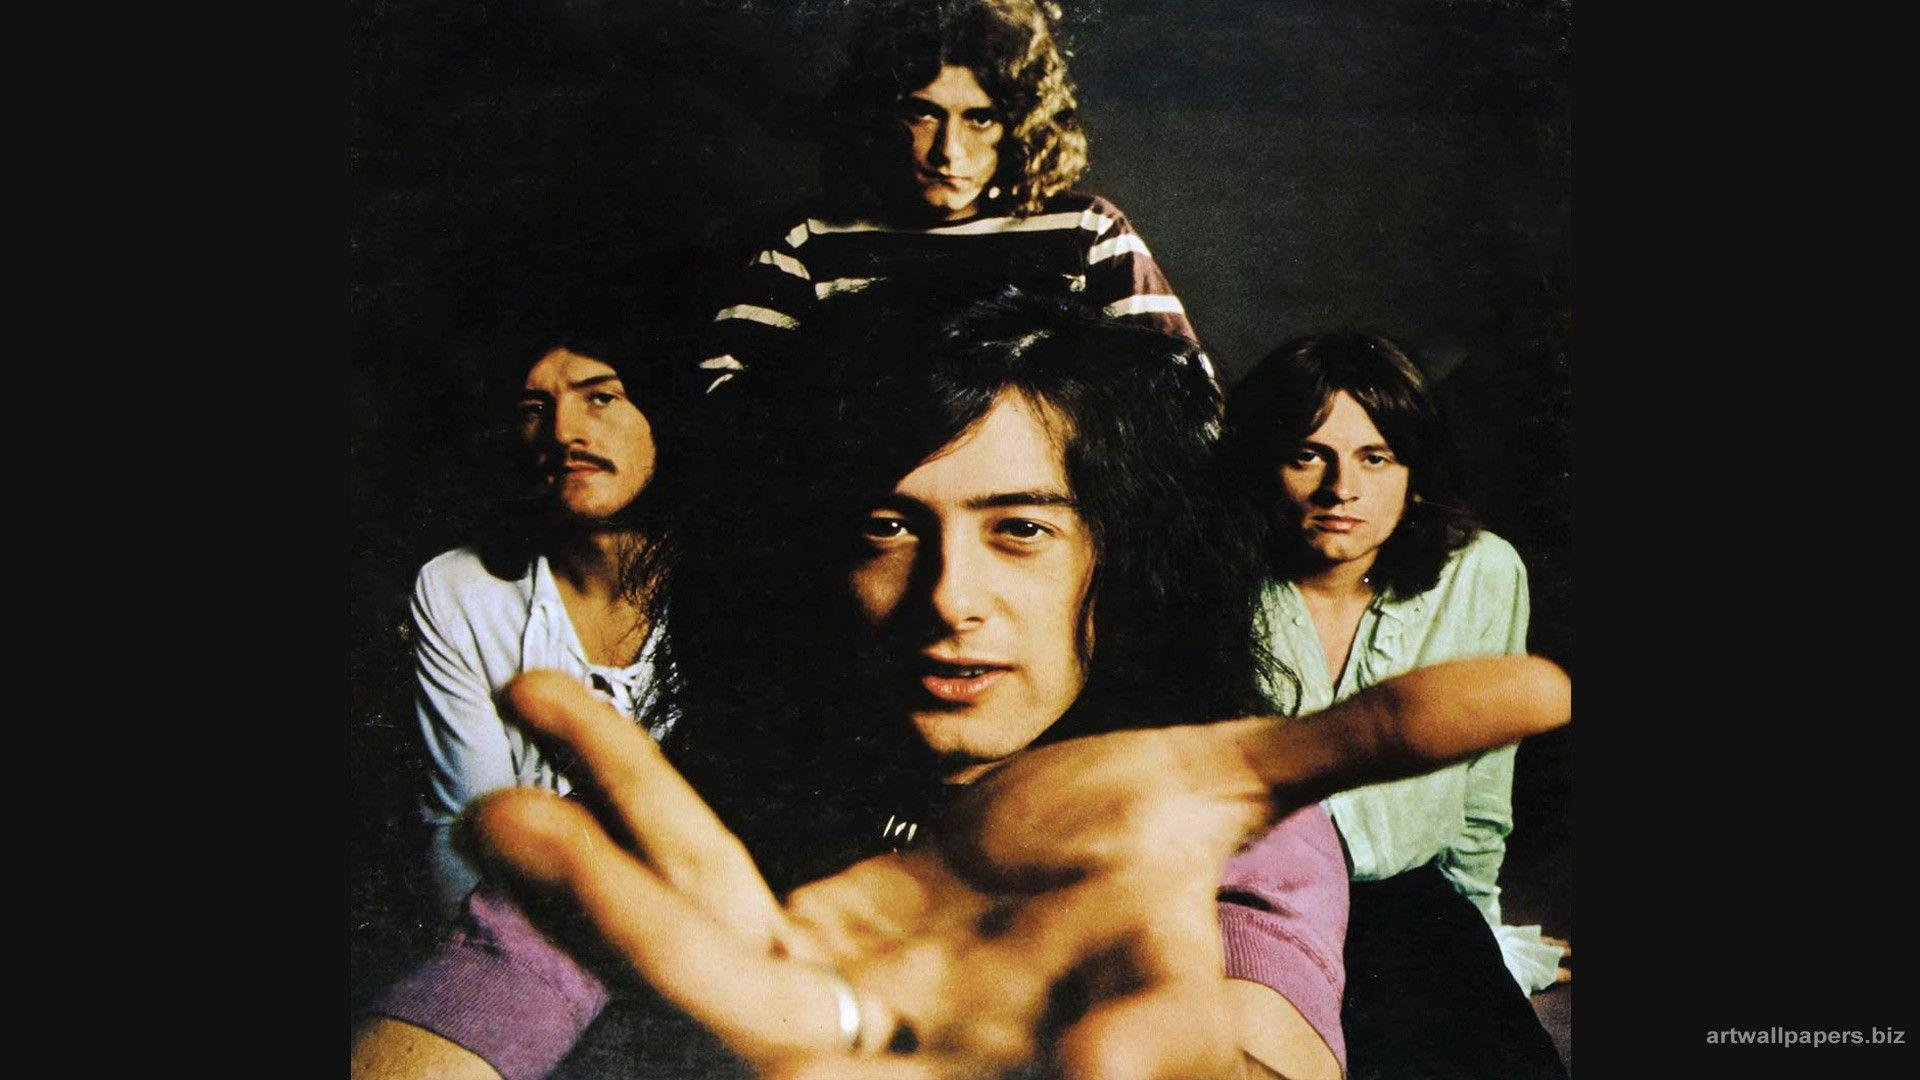 led zeppelin wallpaper - photo #9